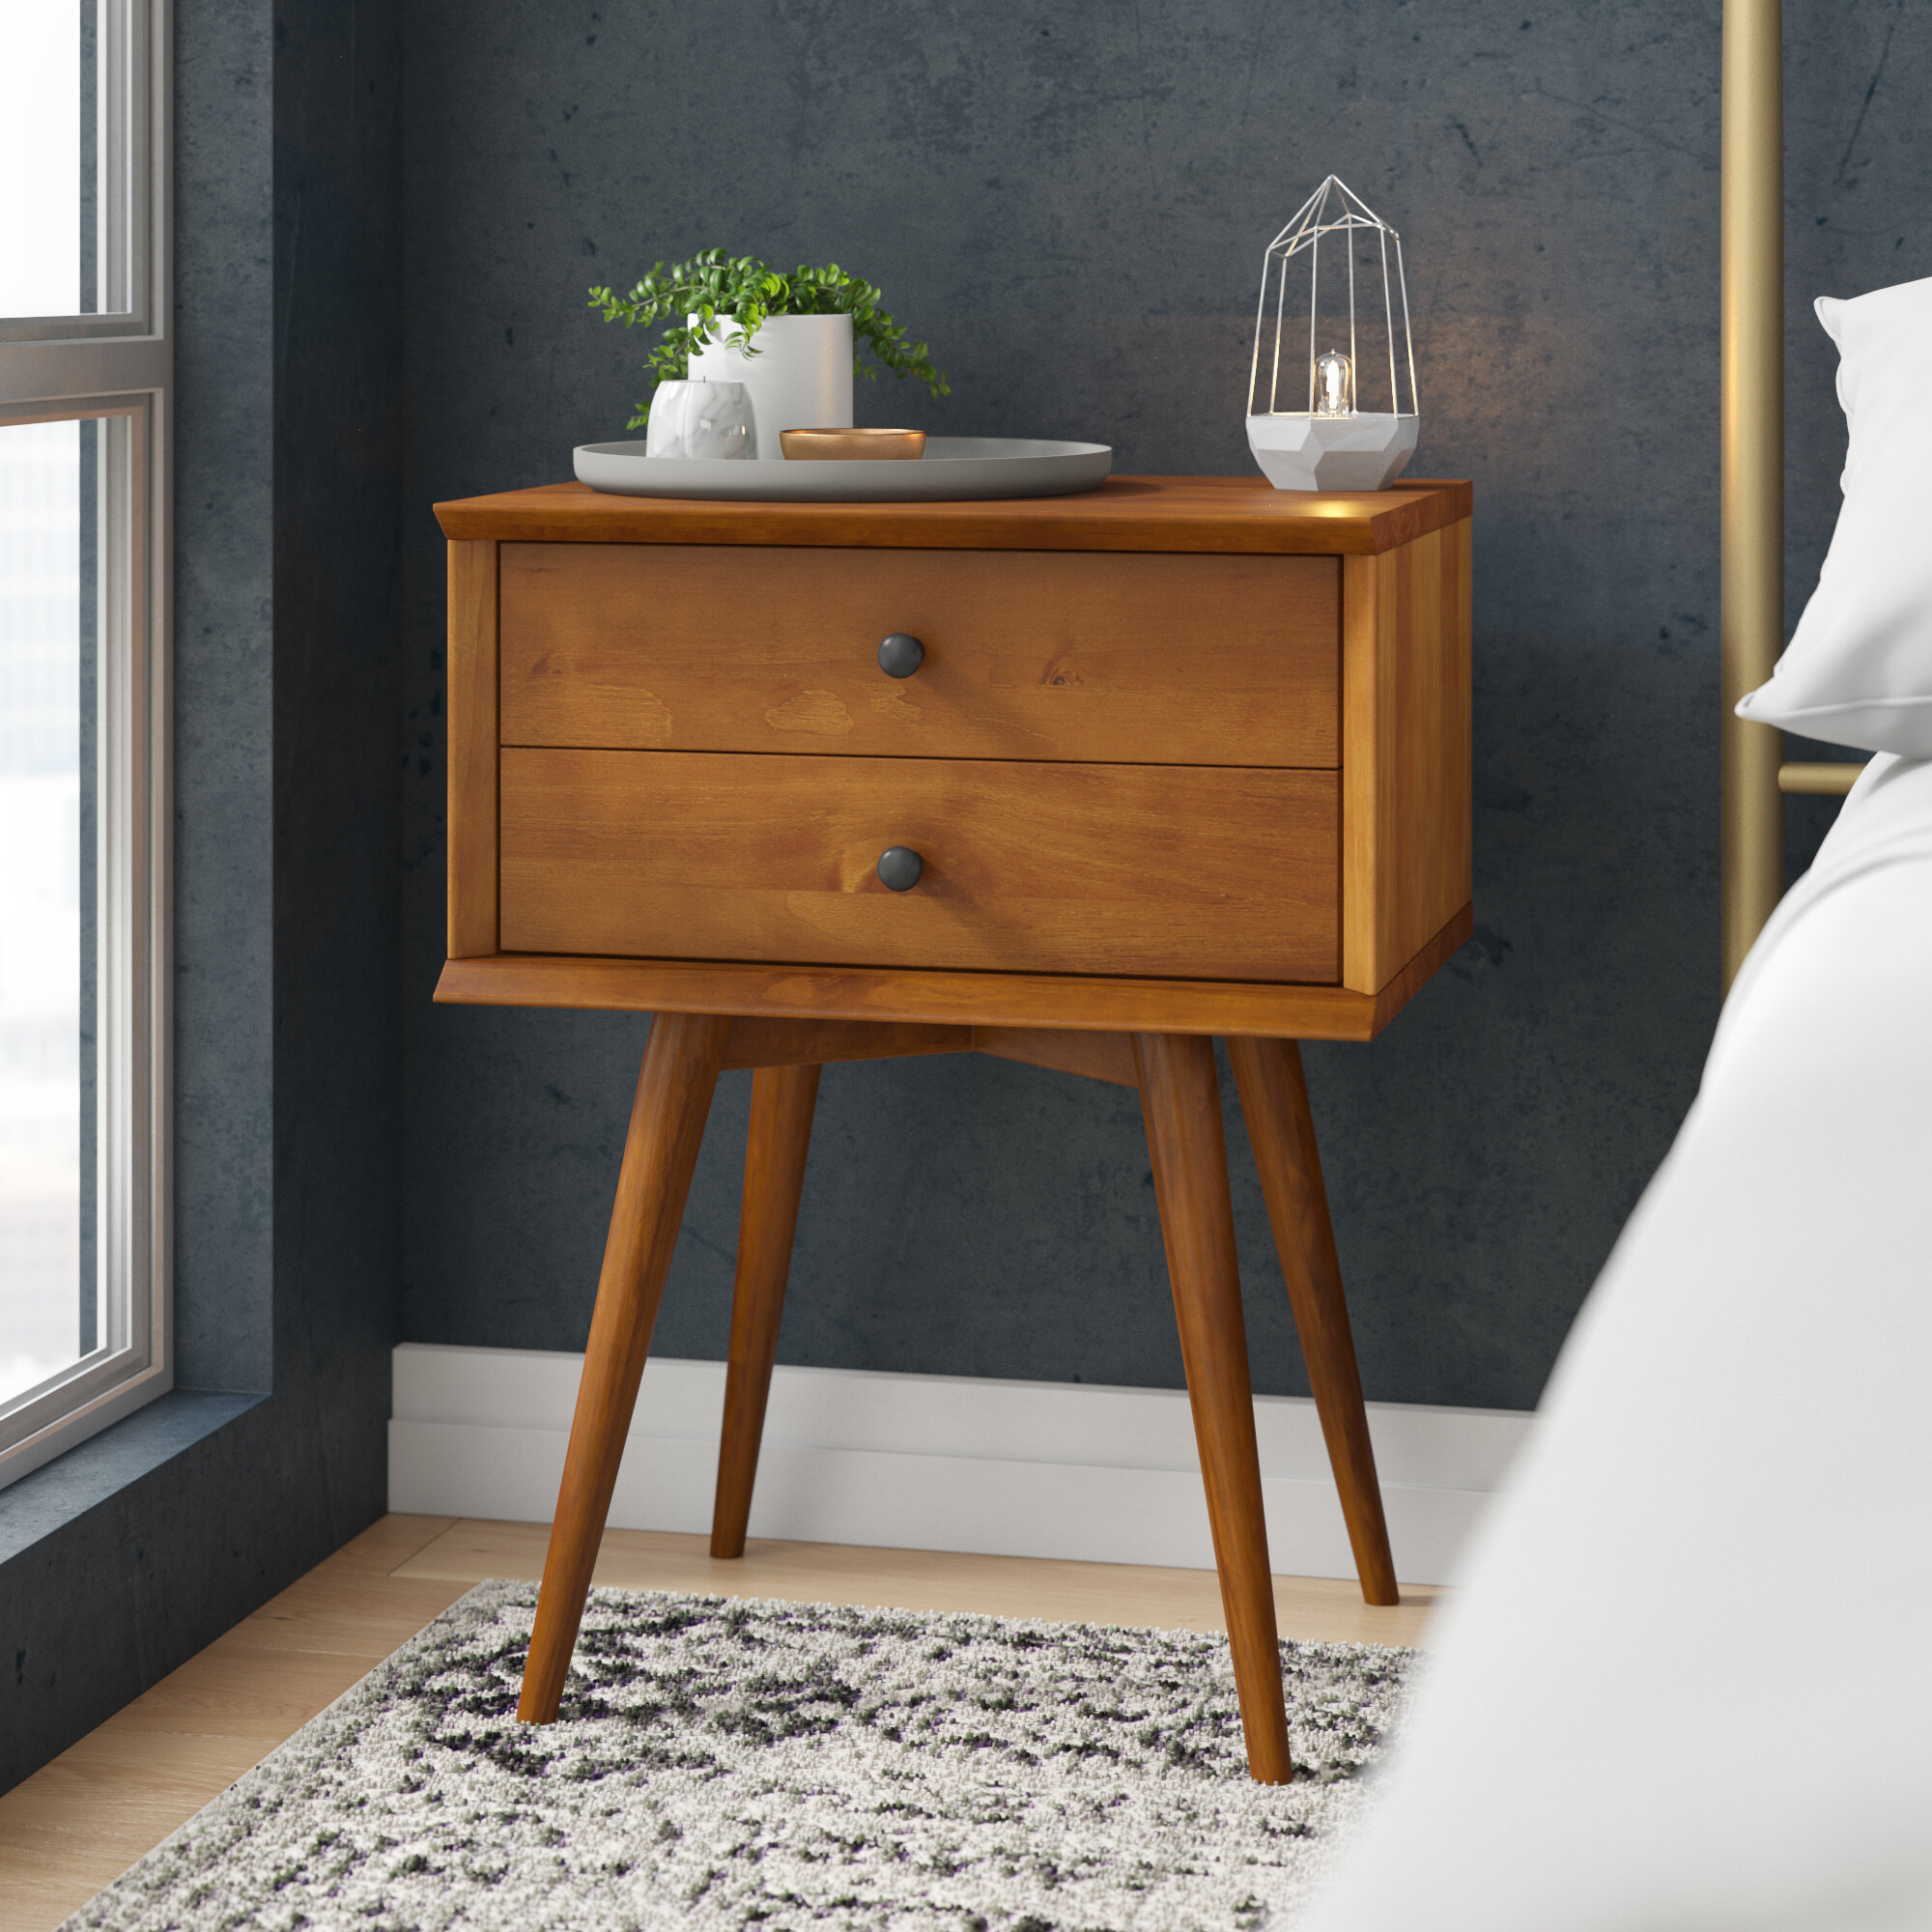 Mid Century Modern Nightstands Free Shipping Over 35 Wayfair